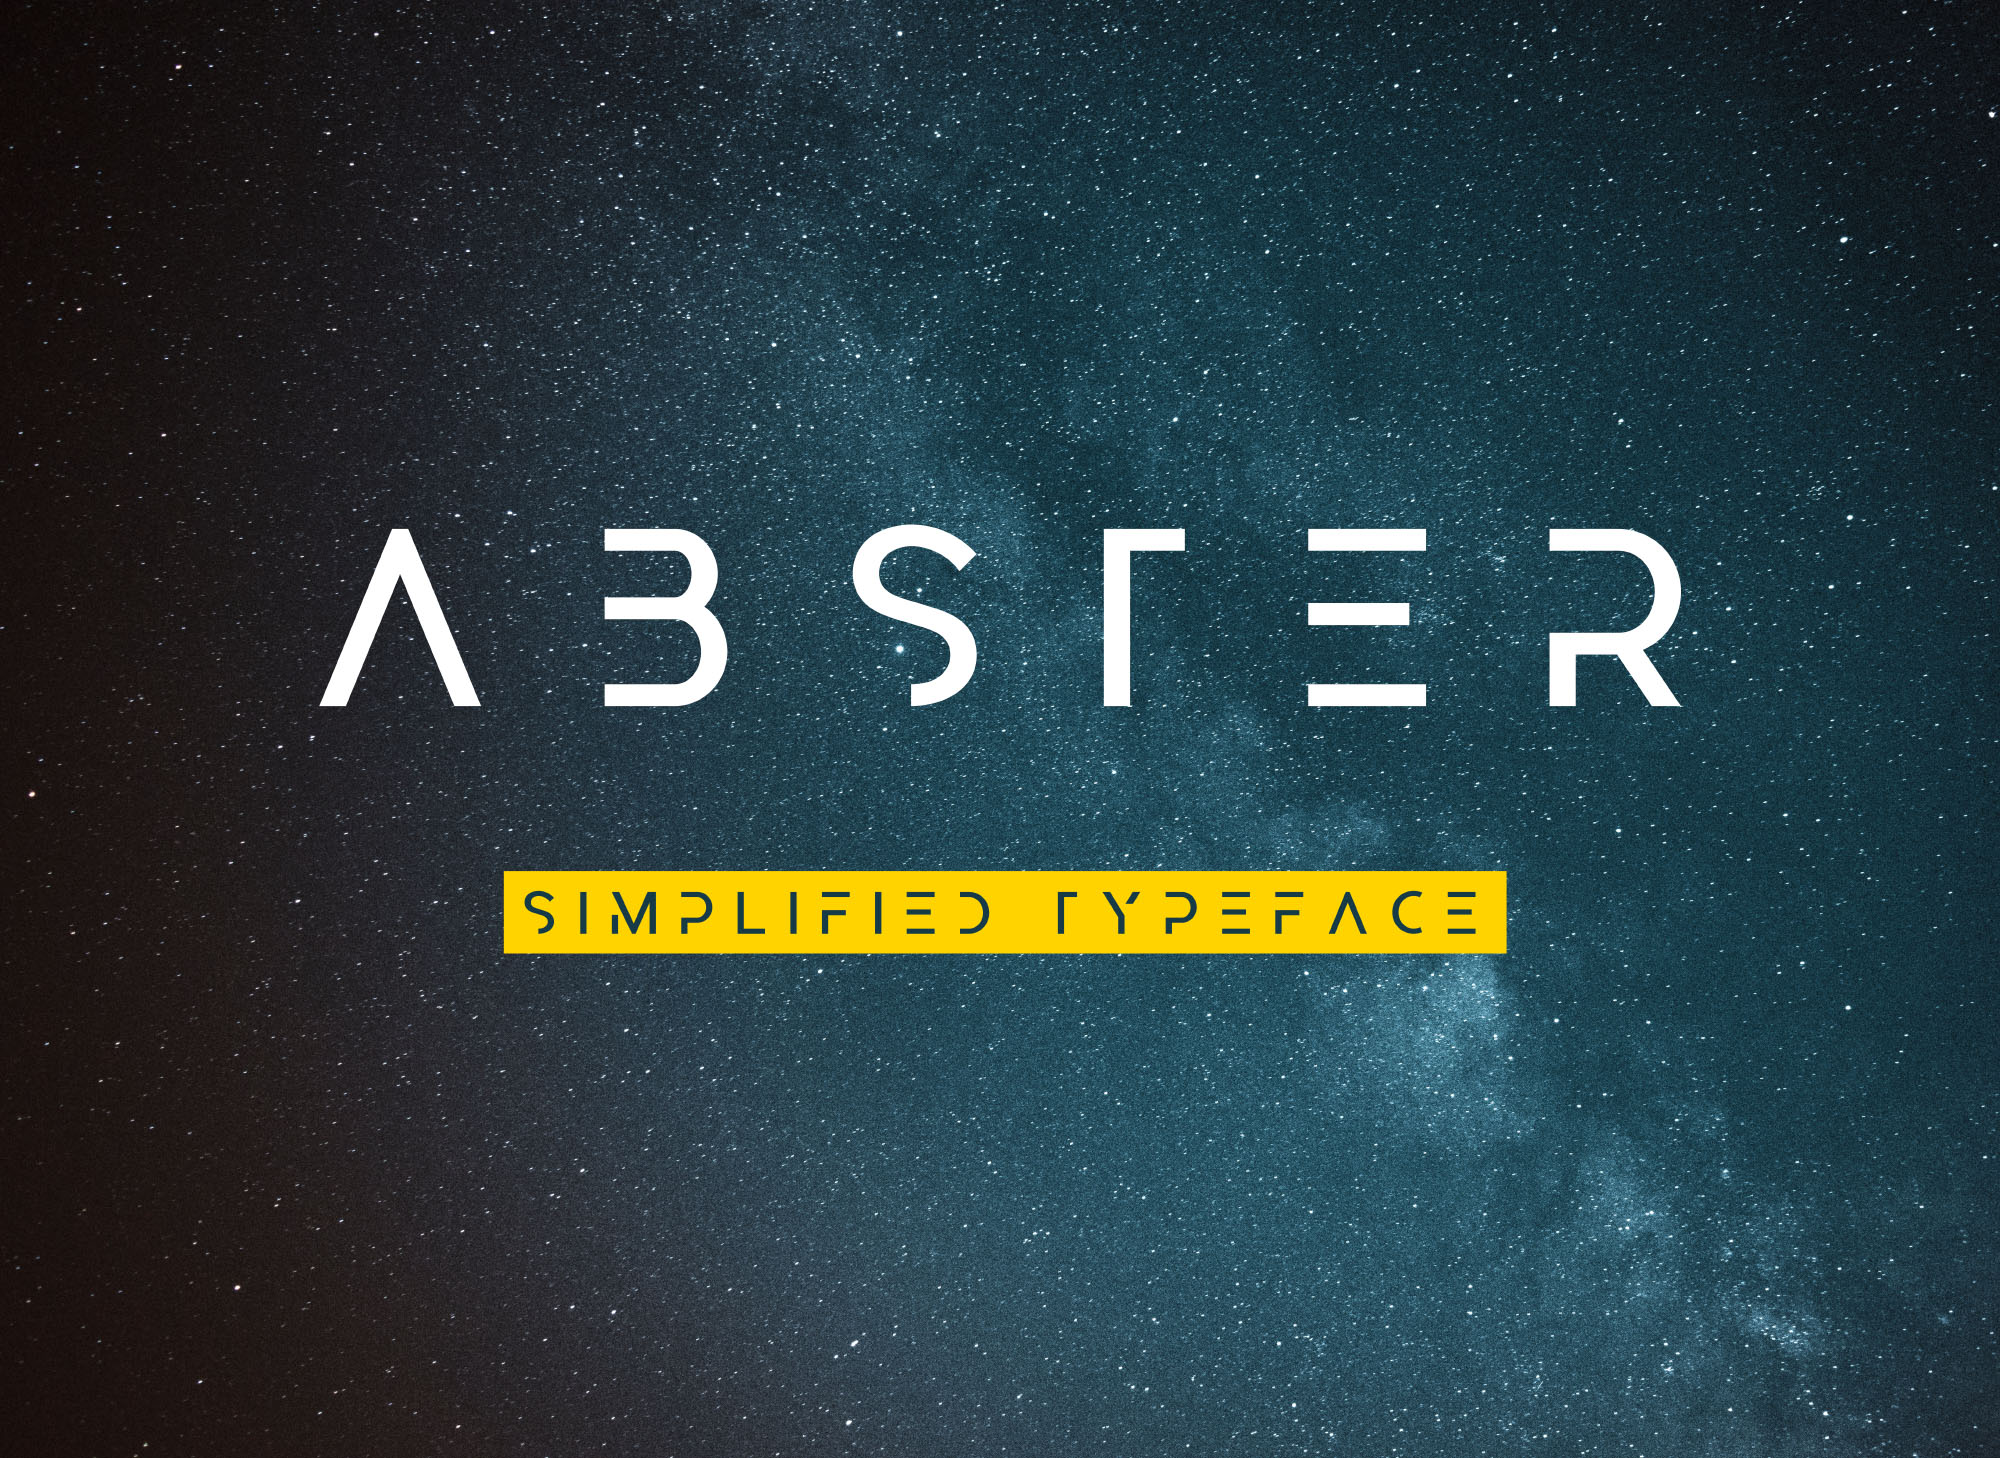 geometric fonts are normally elegant and modern and this free abster typeface is an example its a simplified abstract styled typeface based on a geometric